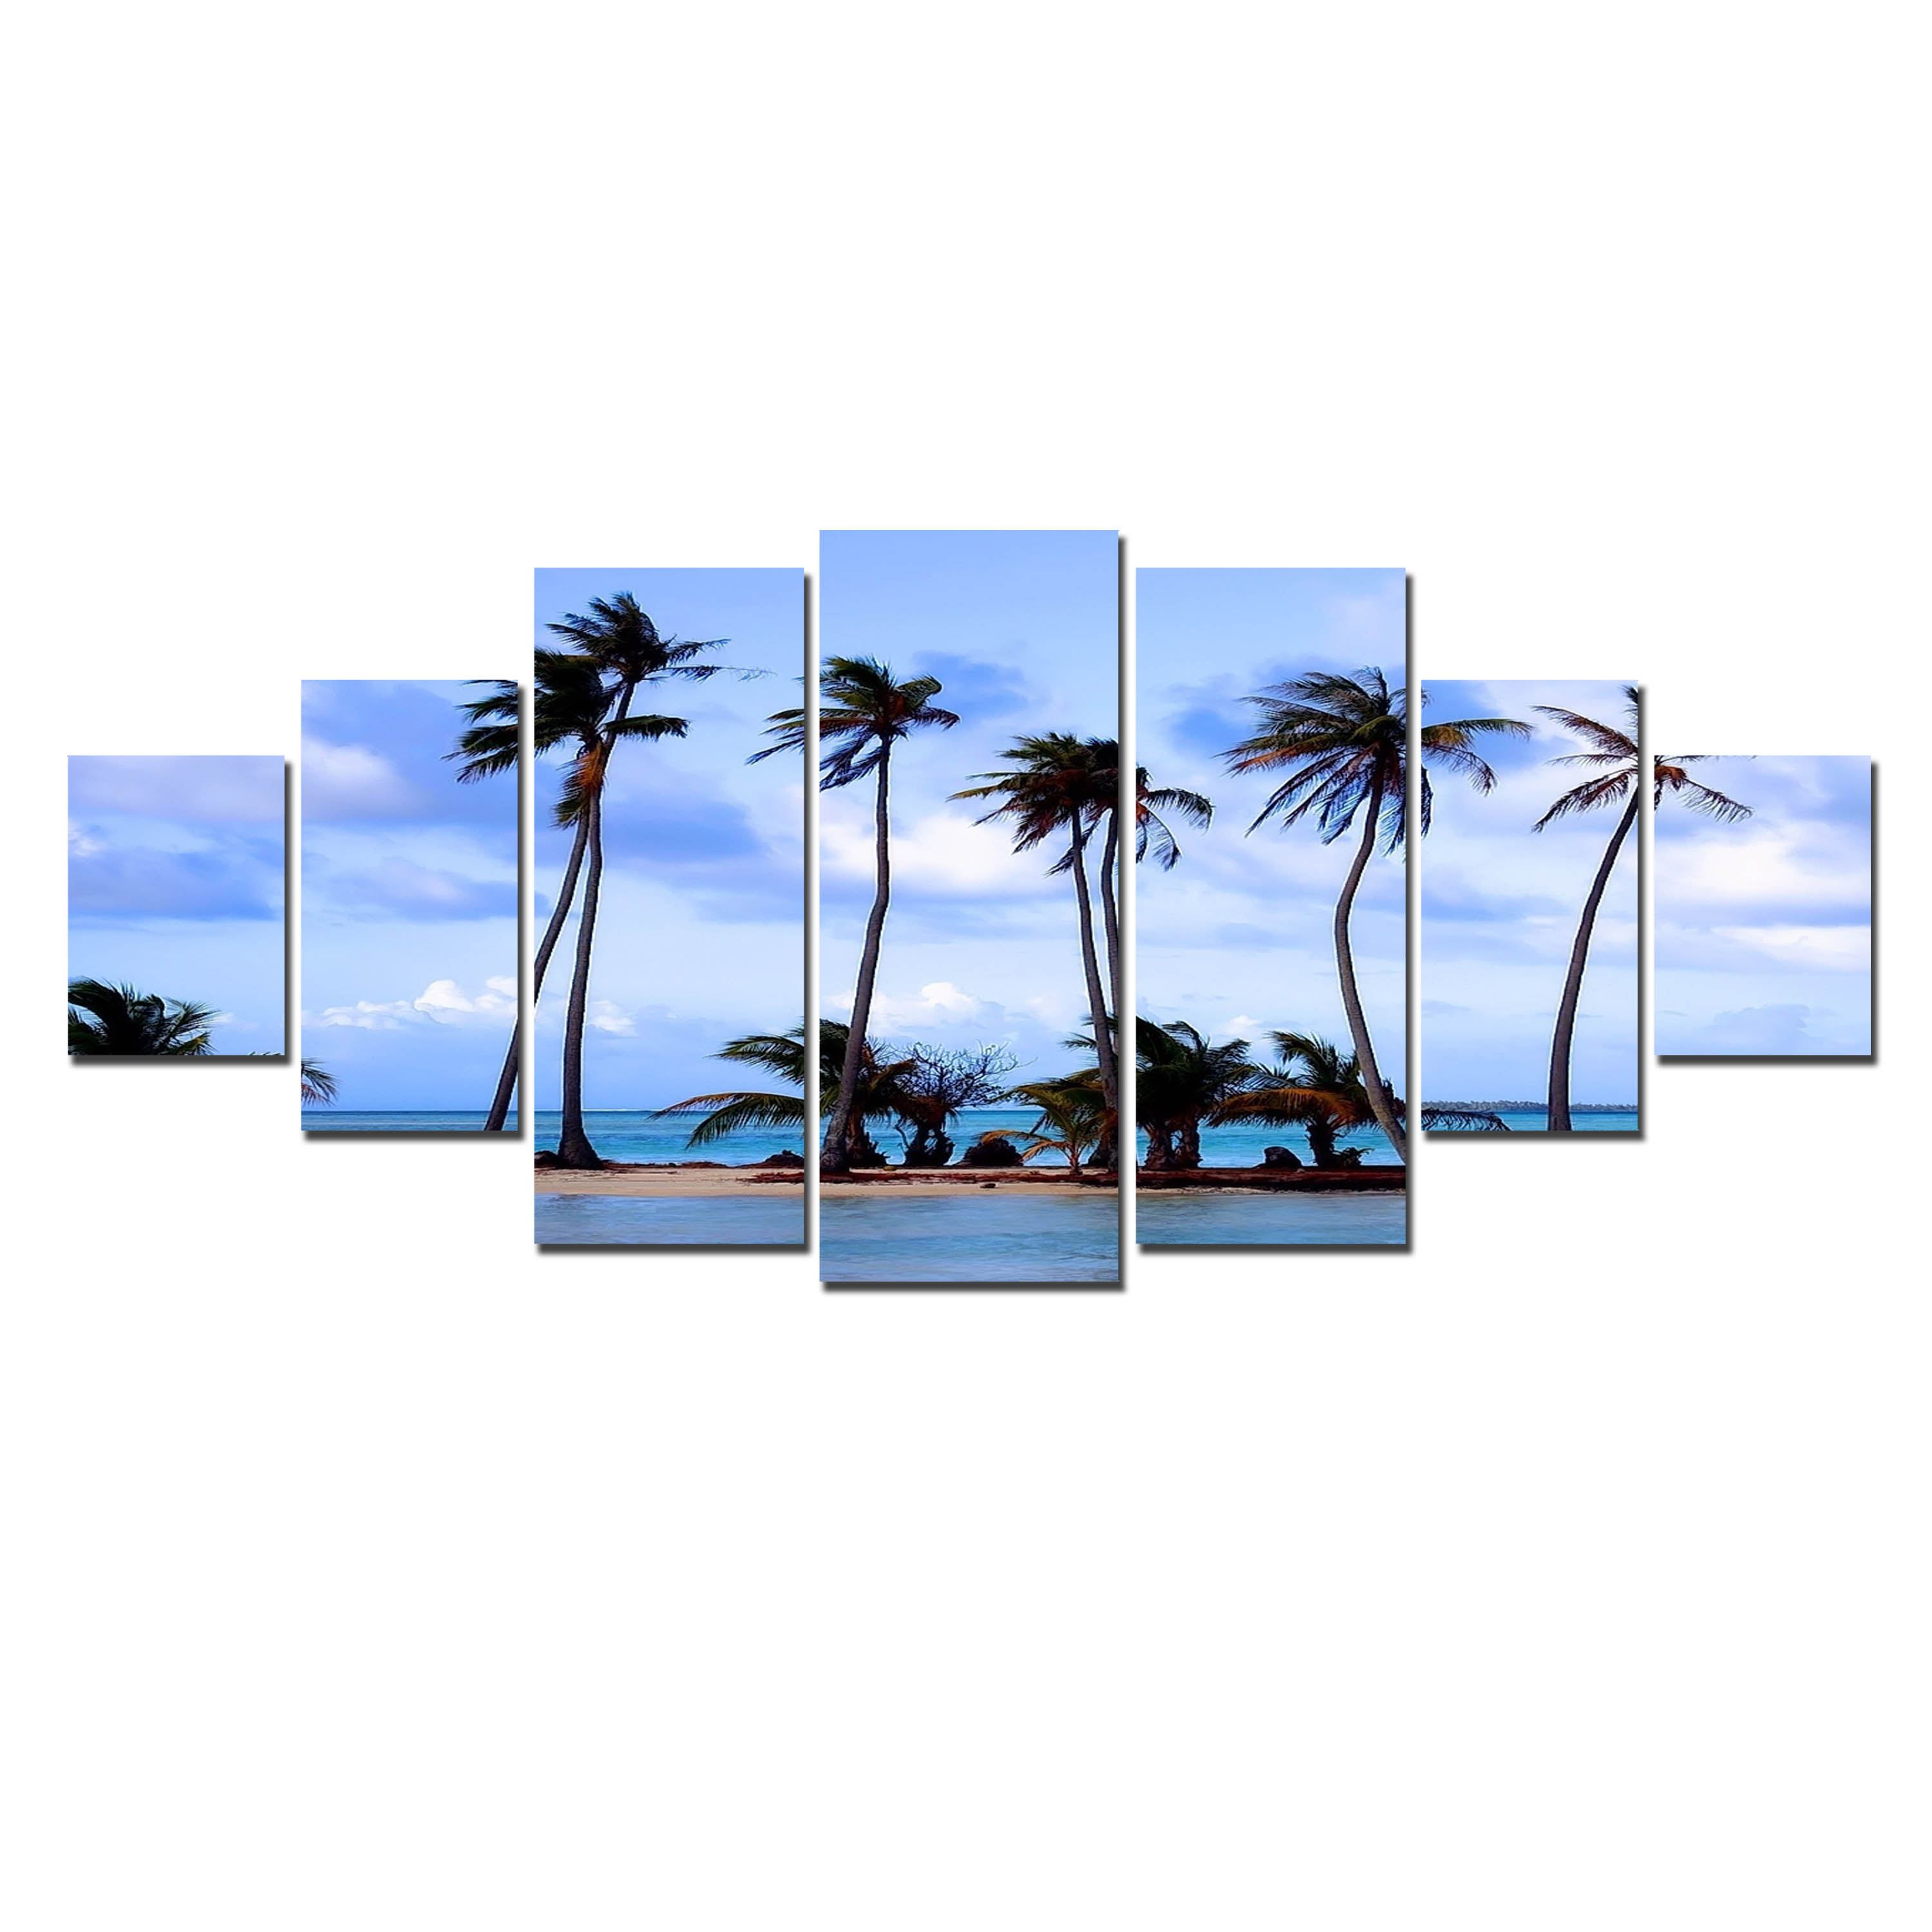 Startonight Huge Canvas Wall Art Palms On The Beach, USA Large Home Decor, Dual View Surprise Artwork Modern Framed Wall Art Set of 7 Panels Total 39.37 x 94.49 inch